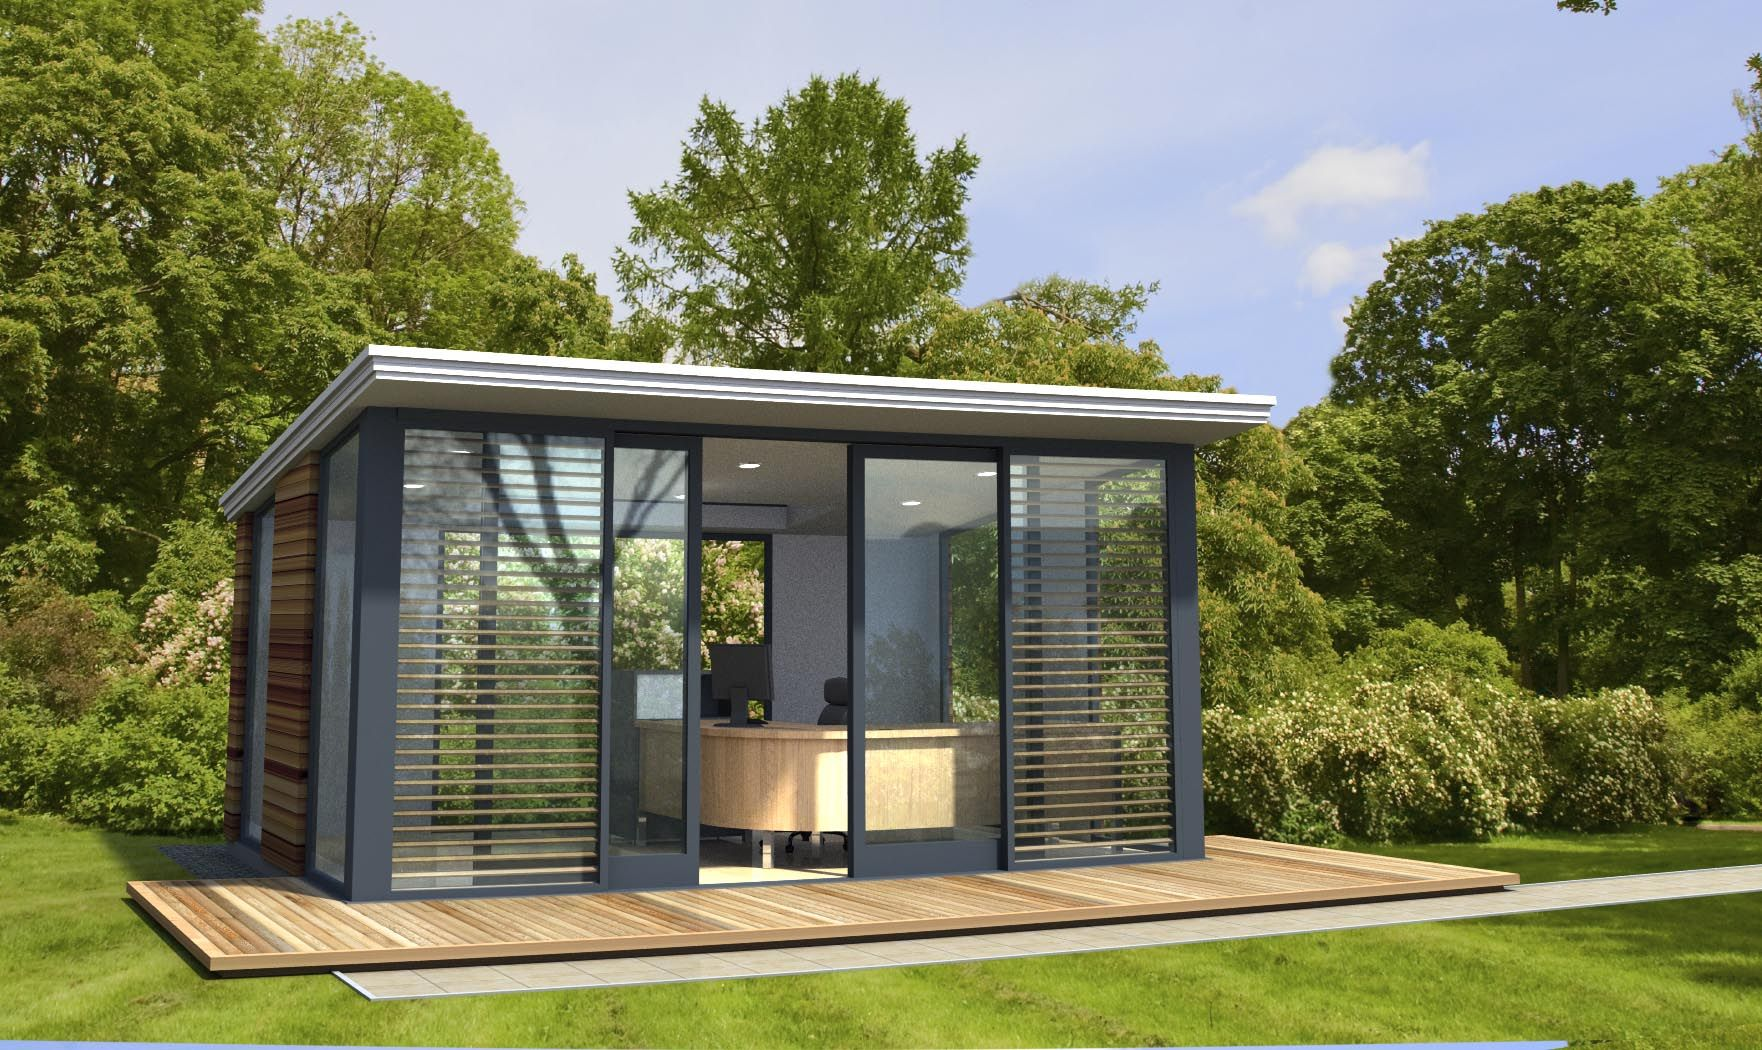 Attrayant Modern Outdoor Home Office With Wooden Desk And Black Chair Facing Wide  Glass Walls And Wooden Shutters Near Green Grass Yard Incredible Outdoor  Home ...